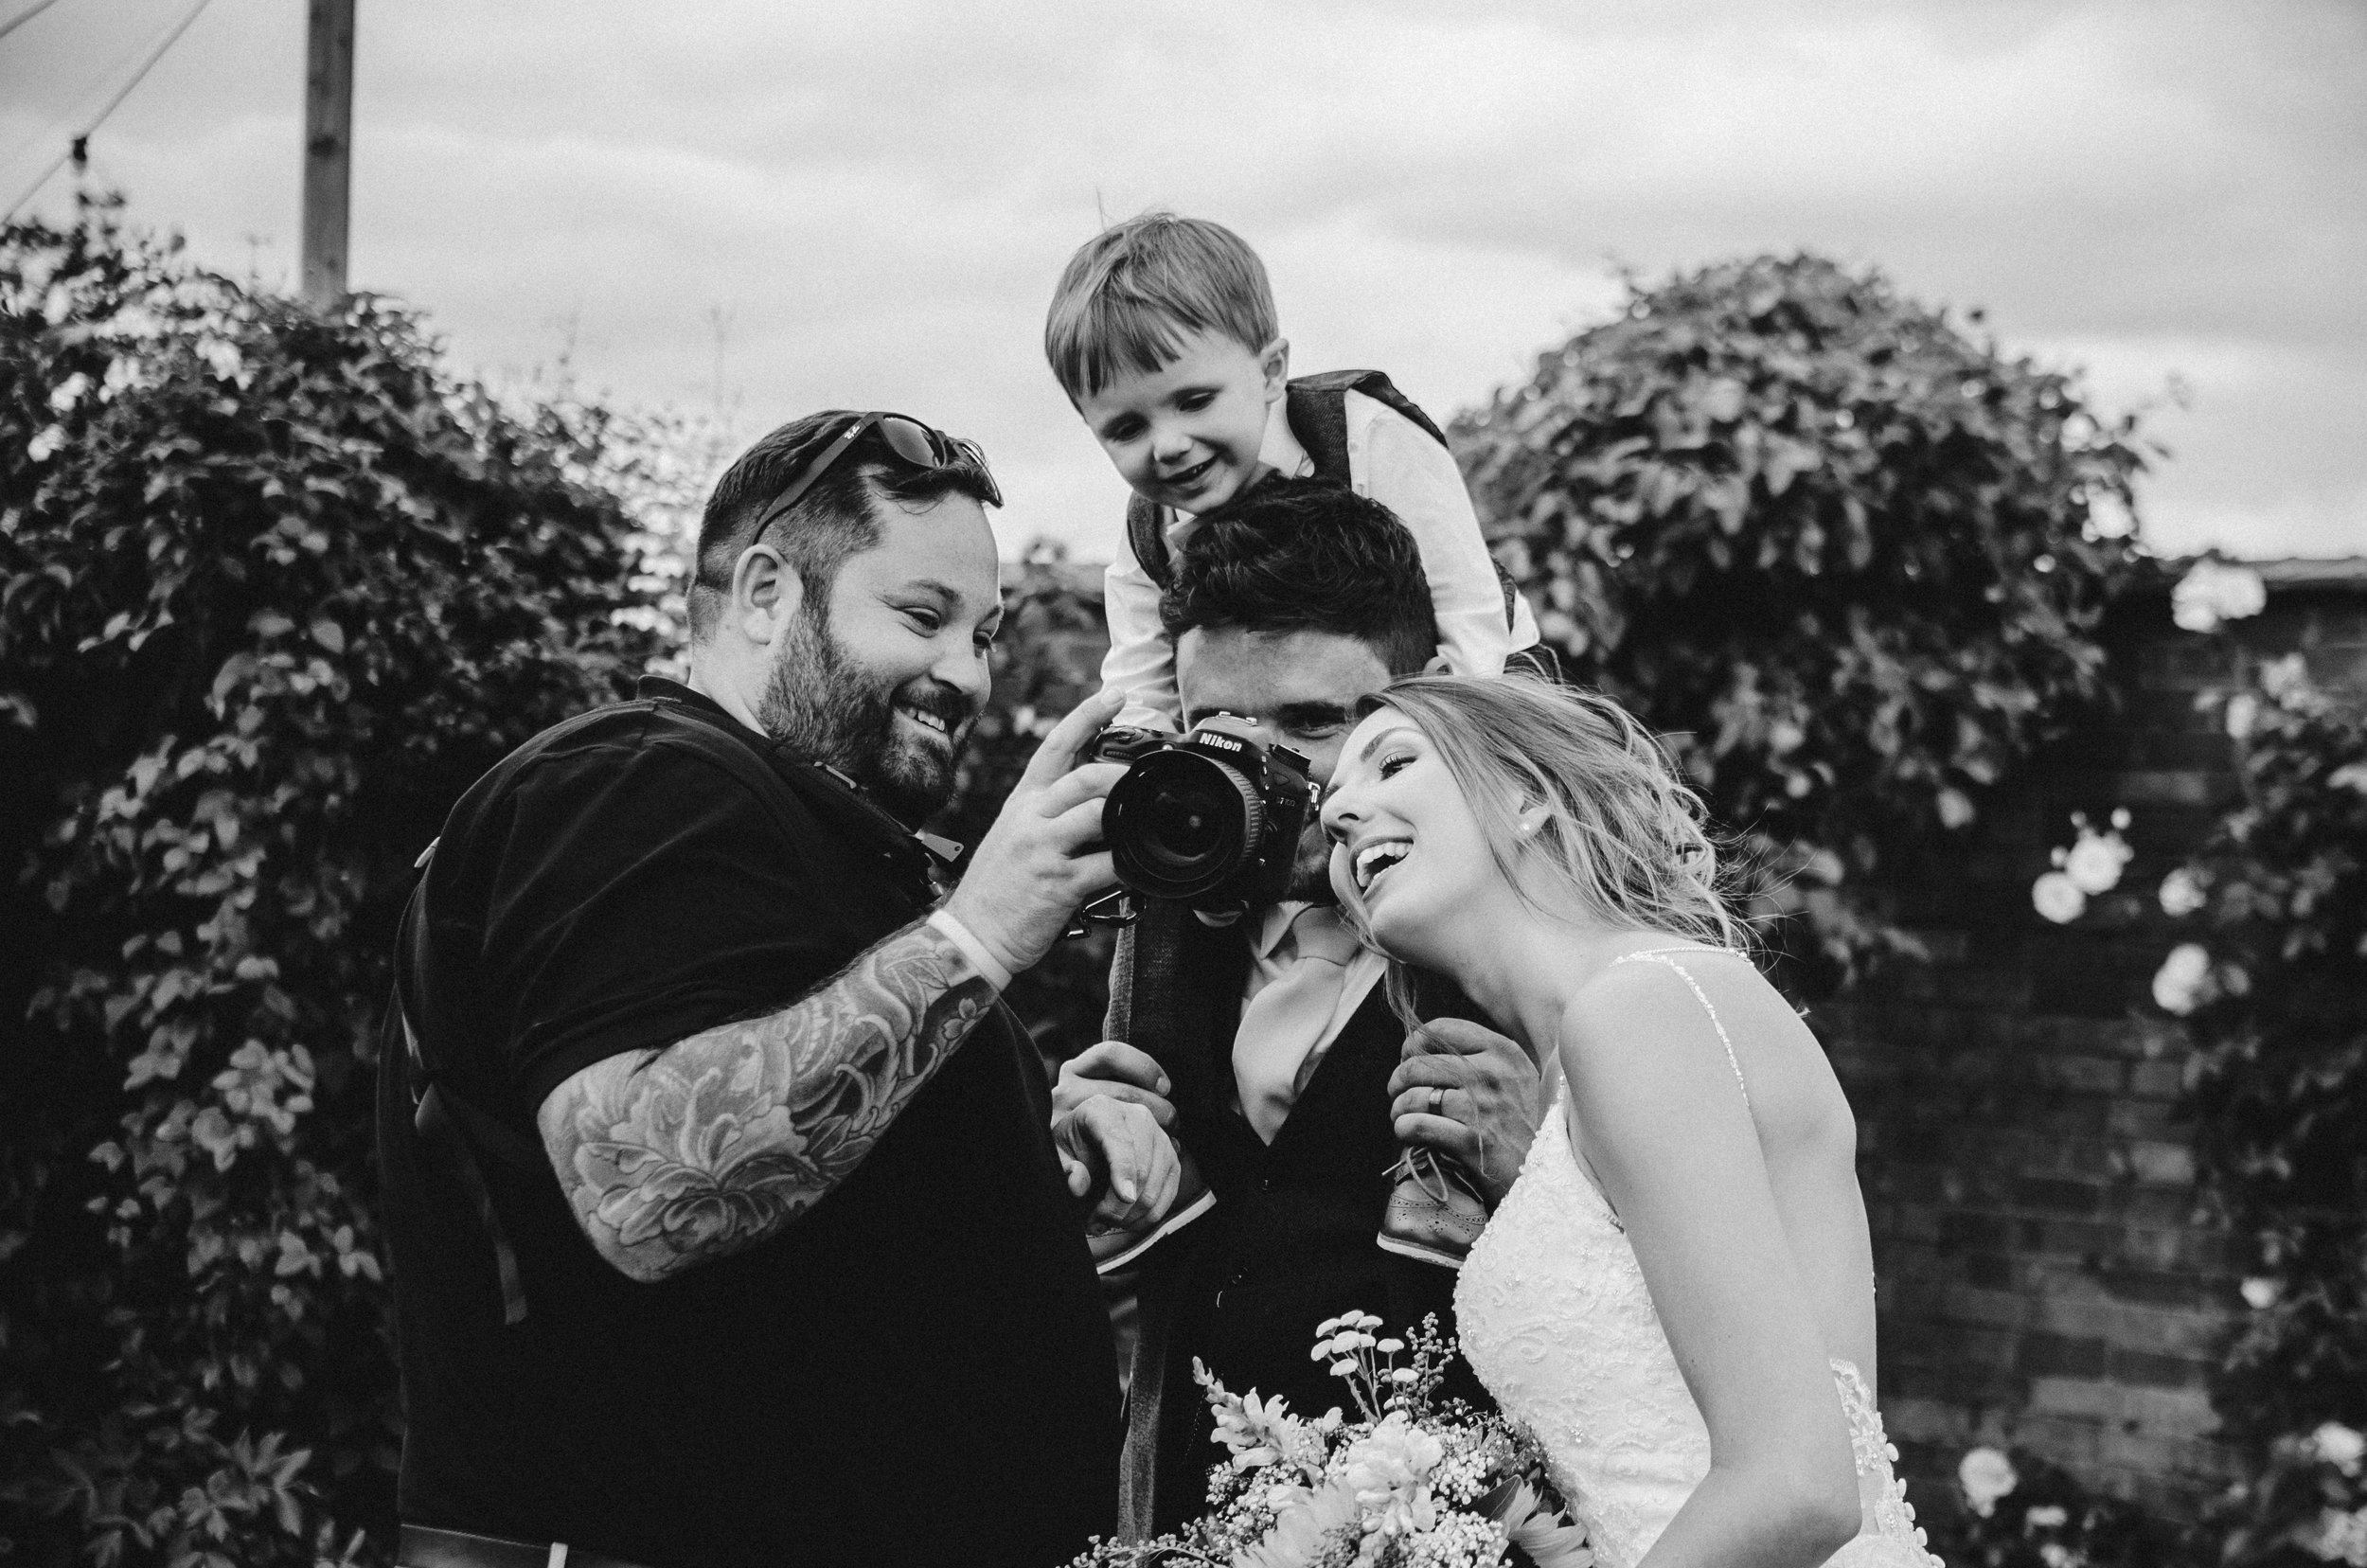 ⭐ LIMITED OFFER ⭐Gold Package now only £895.00 SAVE £300 - A full days wedding photography to include: pre wedding meeting, bridal prep, groom and best man/men photos, bride arrival, guest arrival, ceremony, formal group photos, bride and groom specialist, natural photos throughout the day, speeches, evening guest arrival, cutting the cake and first dance, package finished with two A4 framed prints, a personalised USB, a professional full gloss 40 image photo book and full online gallery.*Terms and conditions apply. Cannot be used in conjunction with any other offer or a wedding already booked.